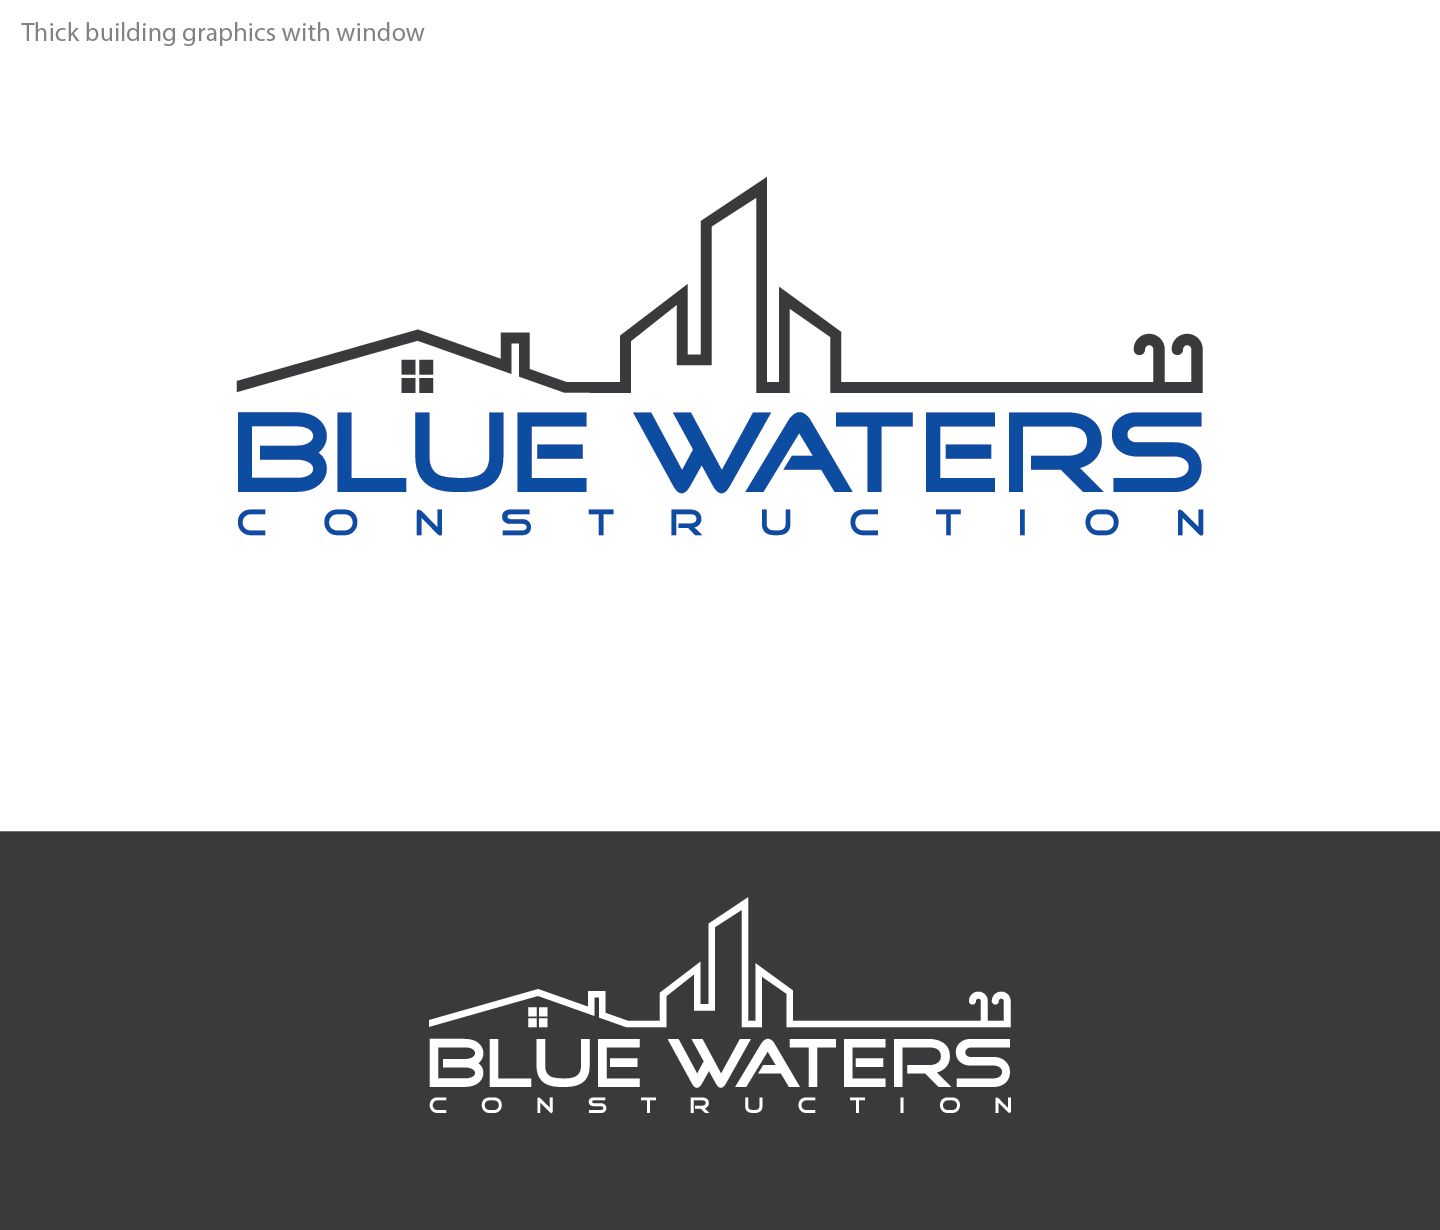 Blue Waters Construction - Construction Logo